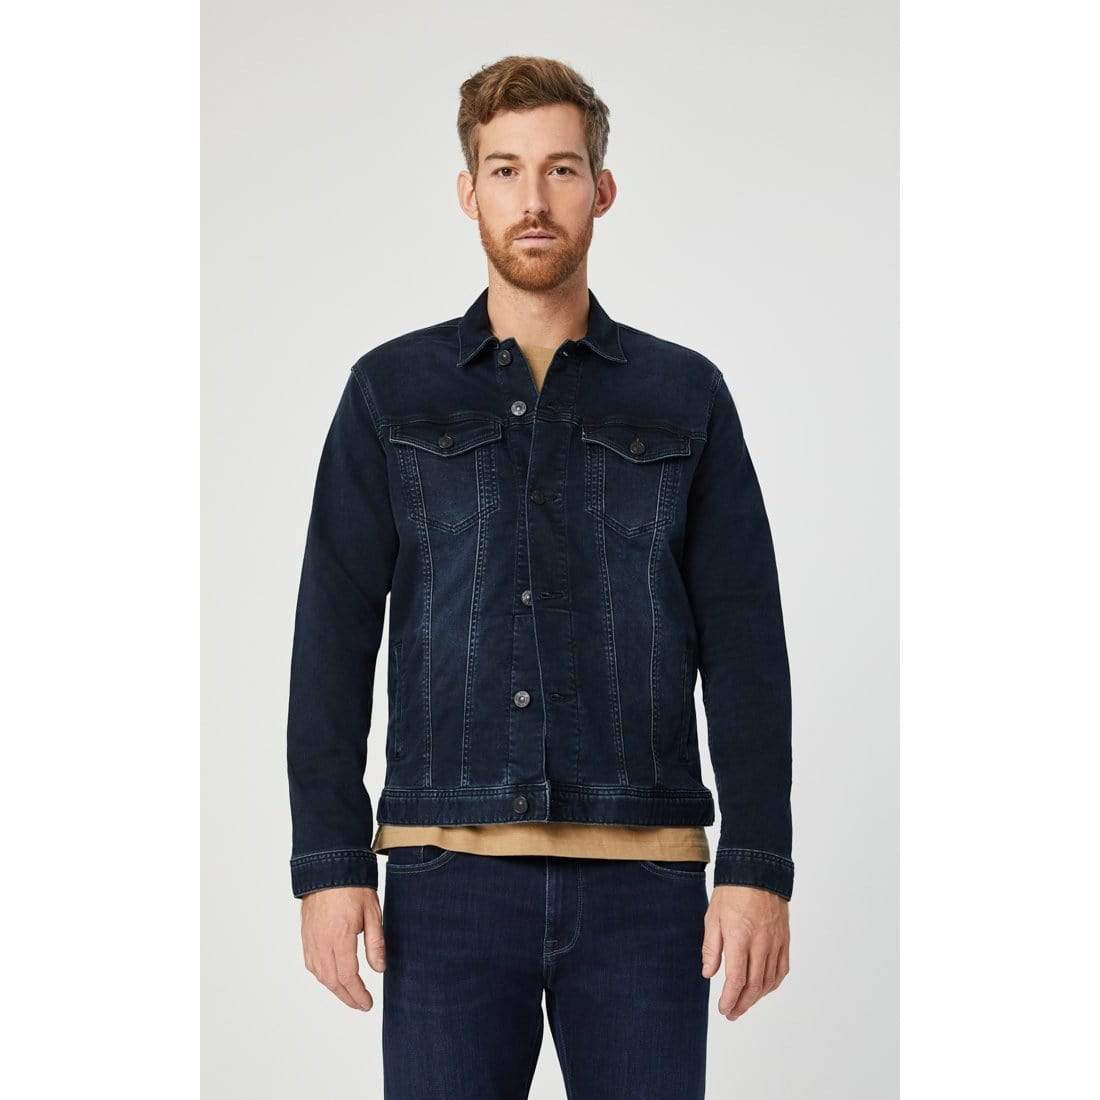 Mavi Jeans Mavi Drake Blue Black Athletic